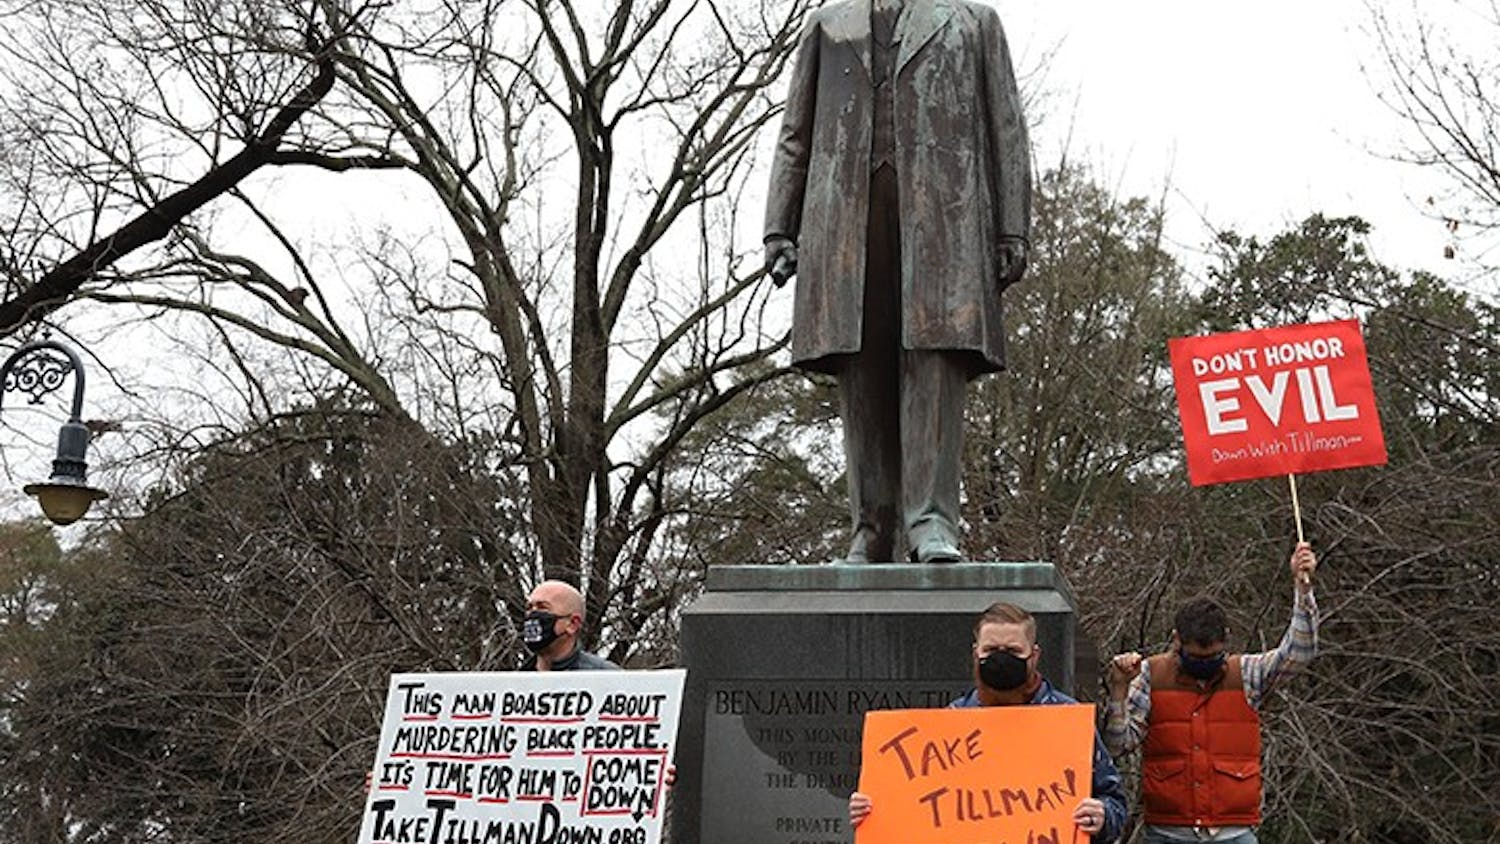 Protesters stand in front of the Benjamin Tillman statue at the South Carolina Statehouse. The protesters are calling for the removal of the statue based on Benjamin Tillman's history.